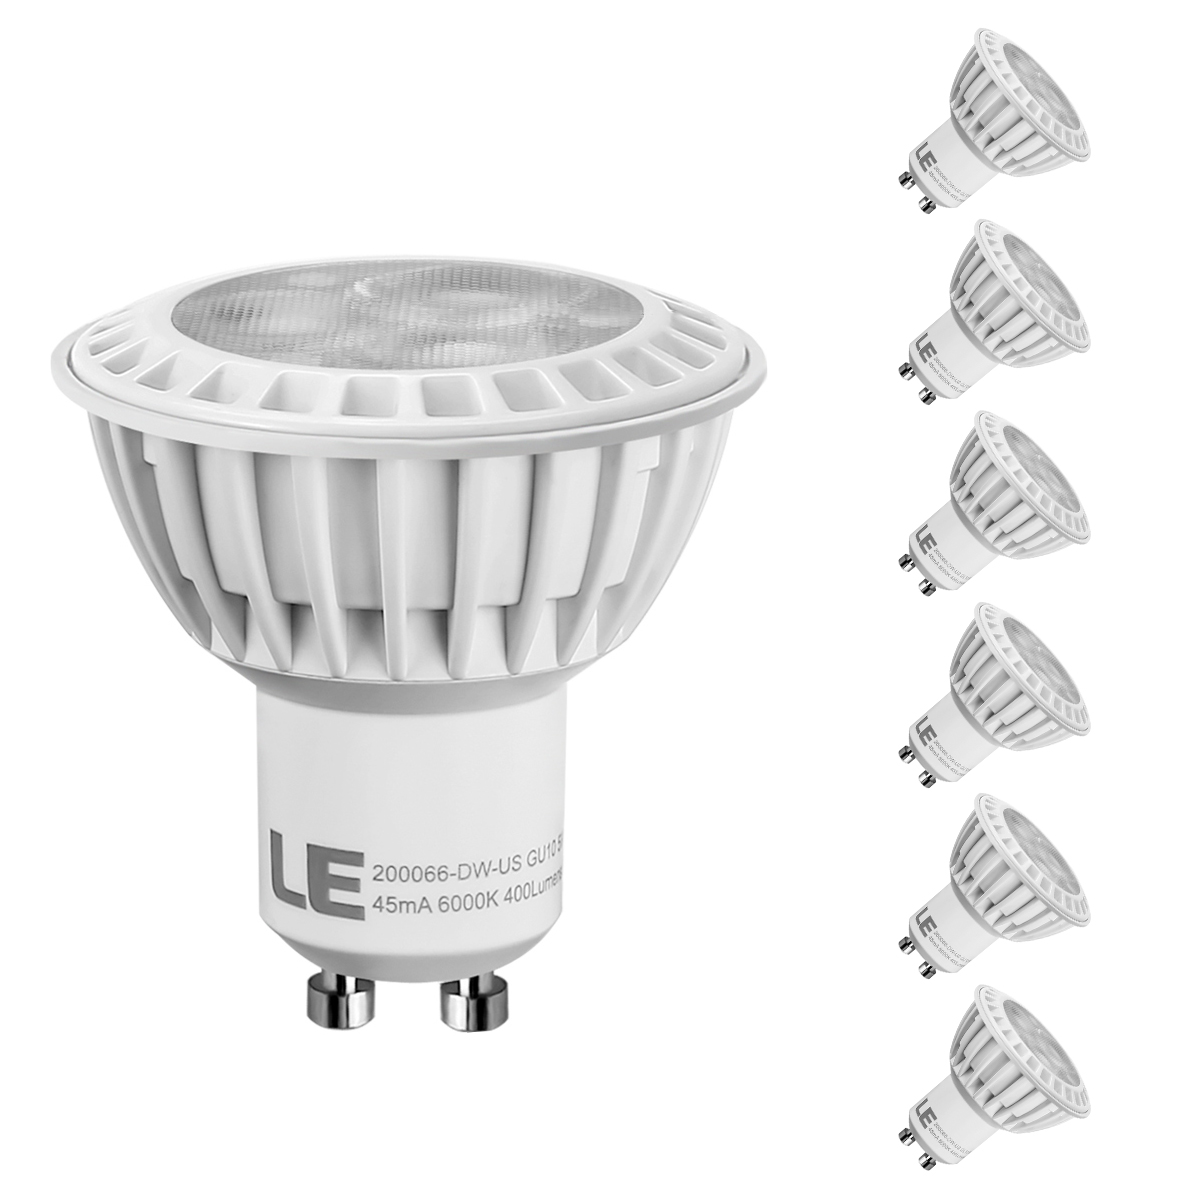 Gu 10 Lighting Ever Top Quality Led Fixtures